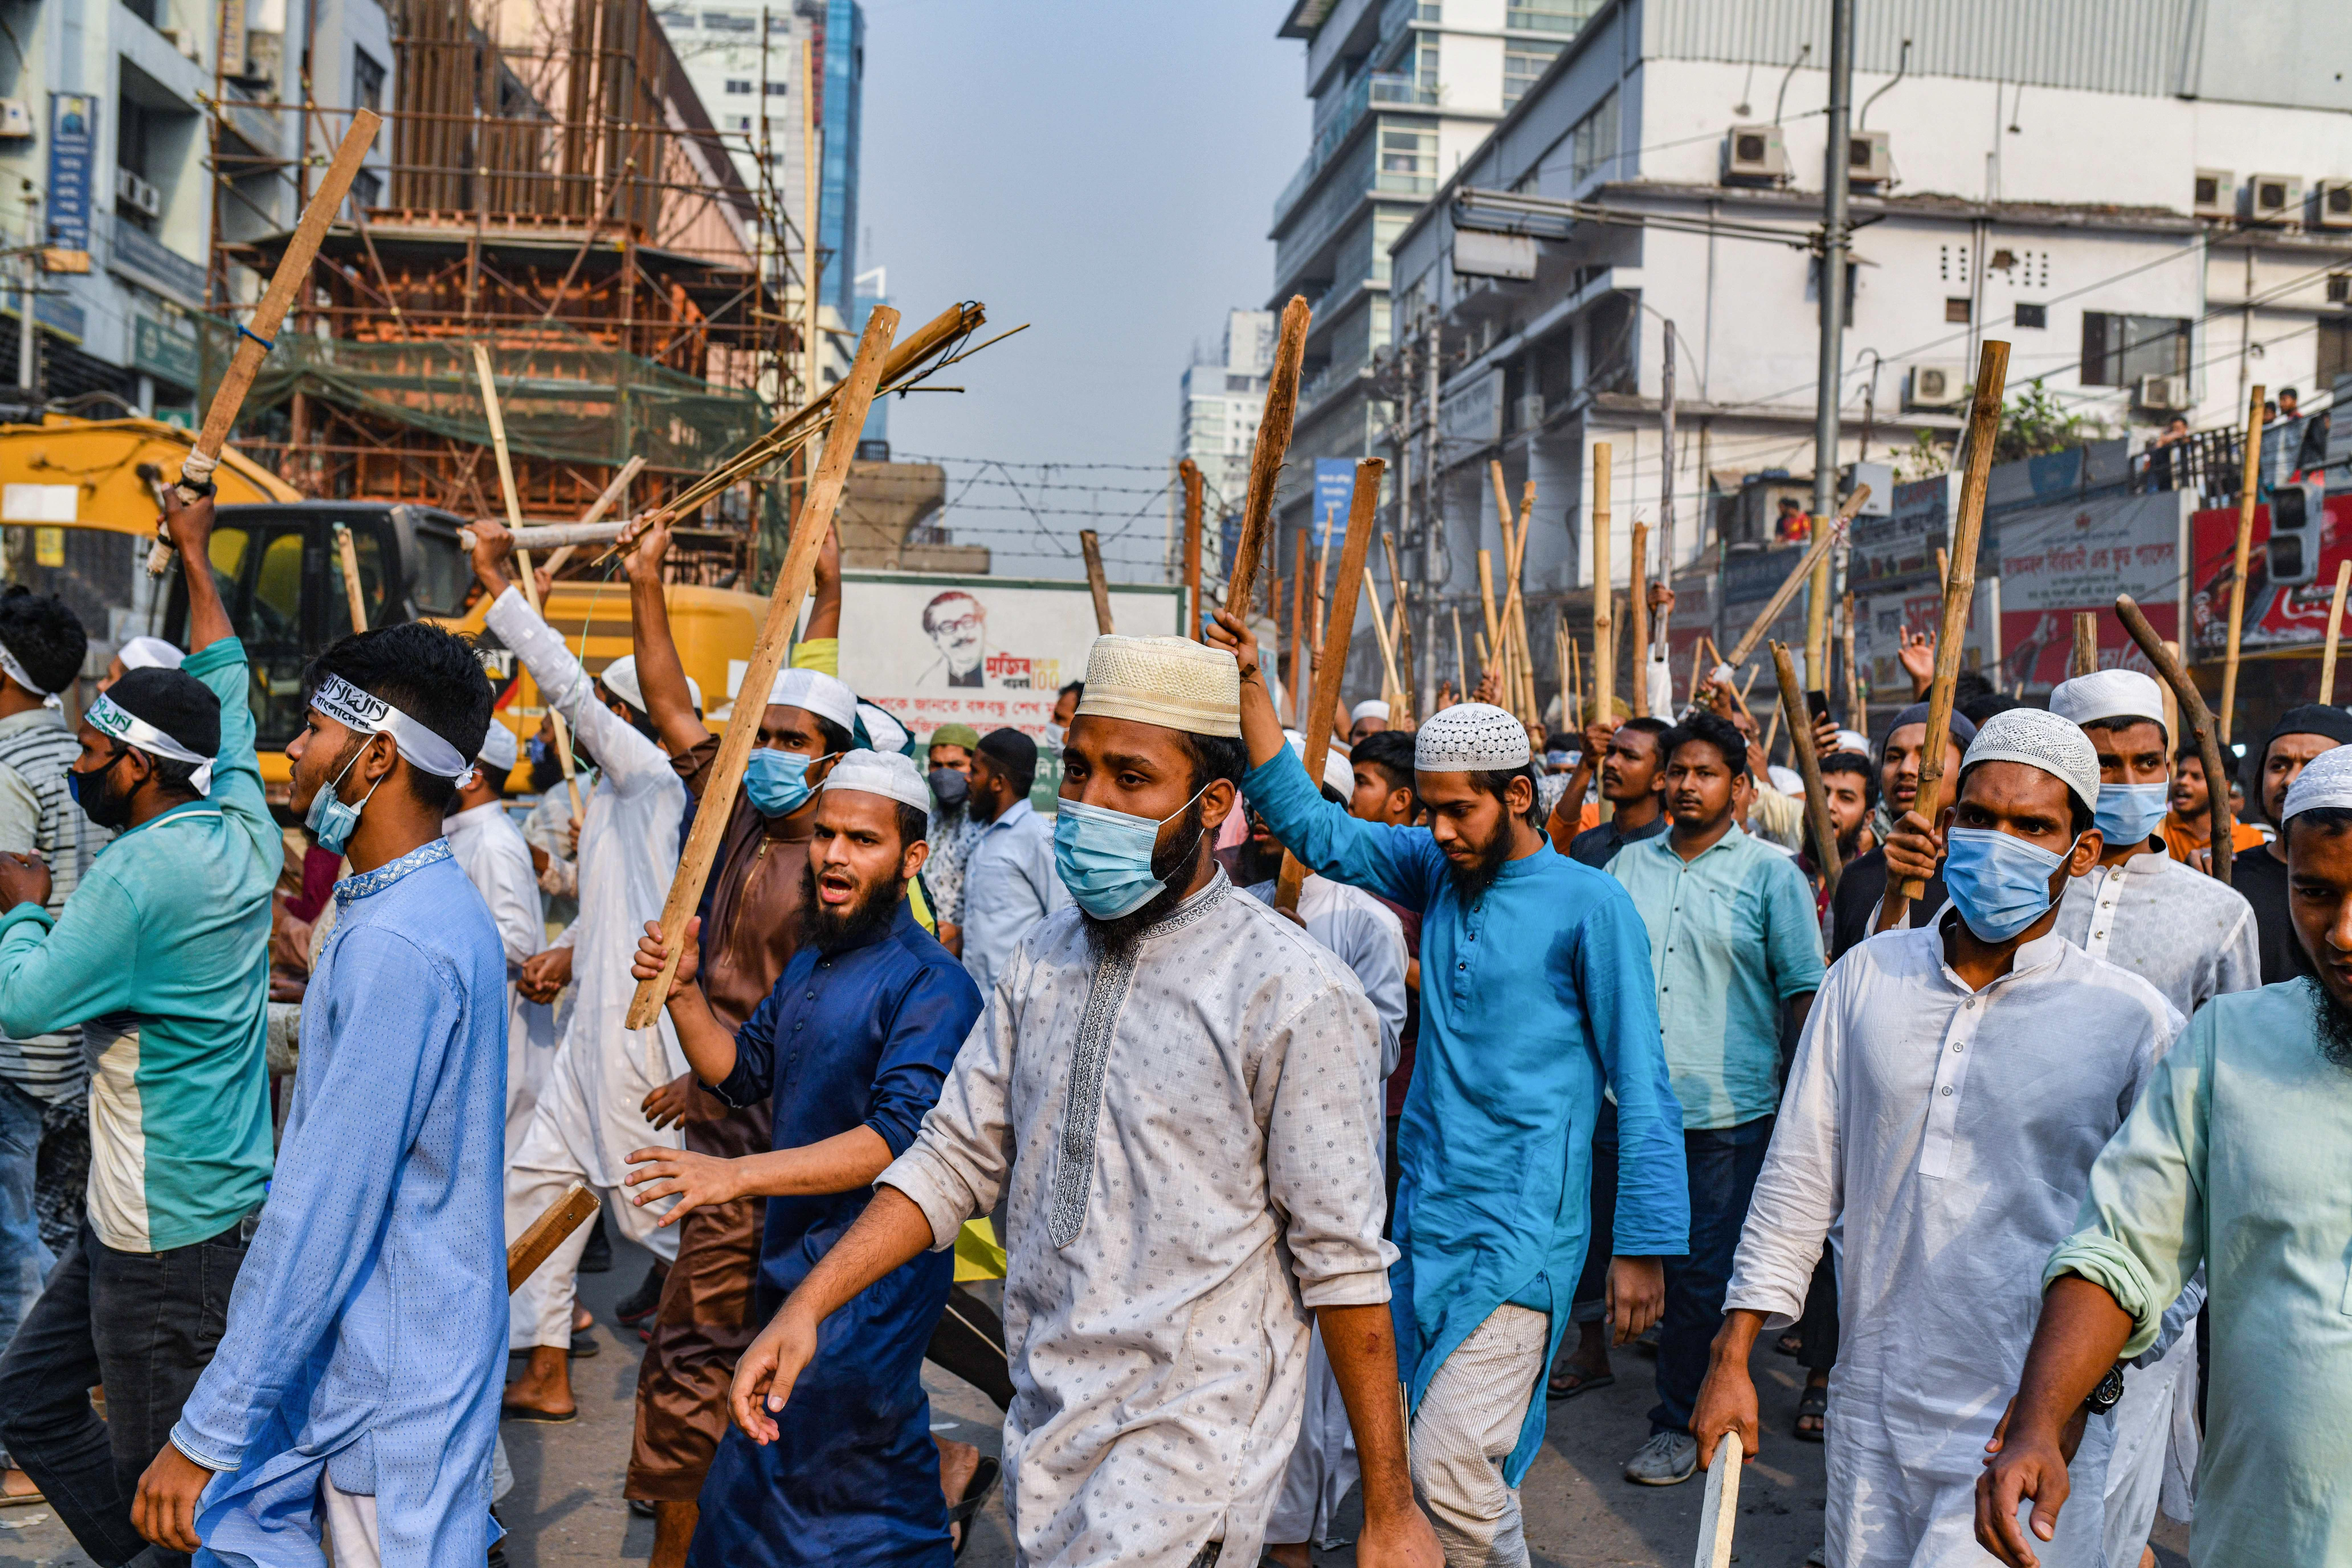 Hefazat-e Islam activists hold sticks while blocking the road during the demonstration. Hefazat-e Islam activists took part during a nationwide strike following the deadly clashes with police over Indian Prime Minister Narendra Modis visit in Dhaka, Bangladesh.